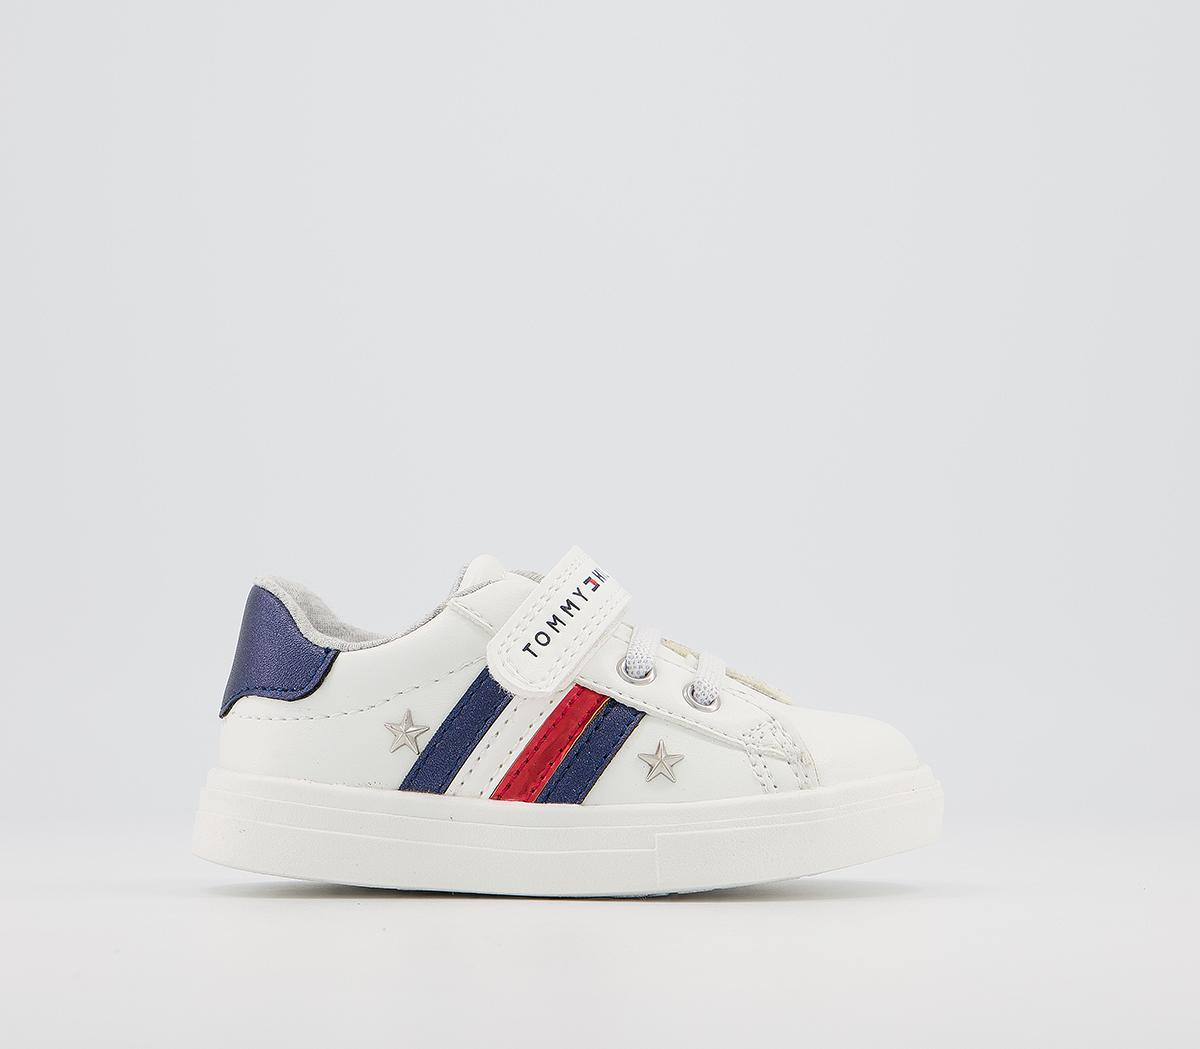 Trainers White Blue Red Metallic Star